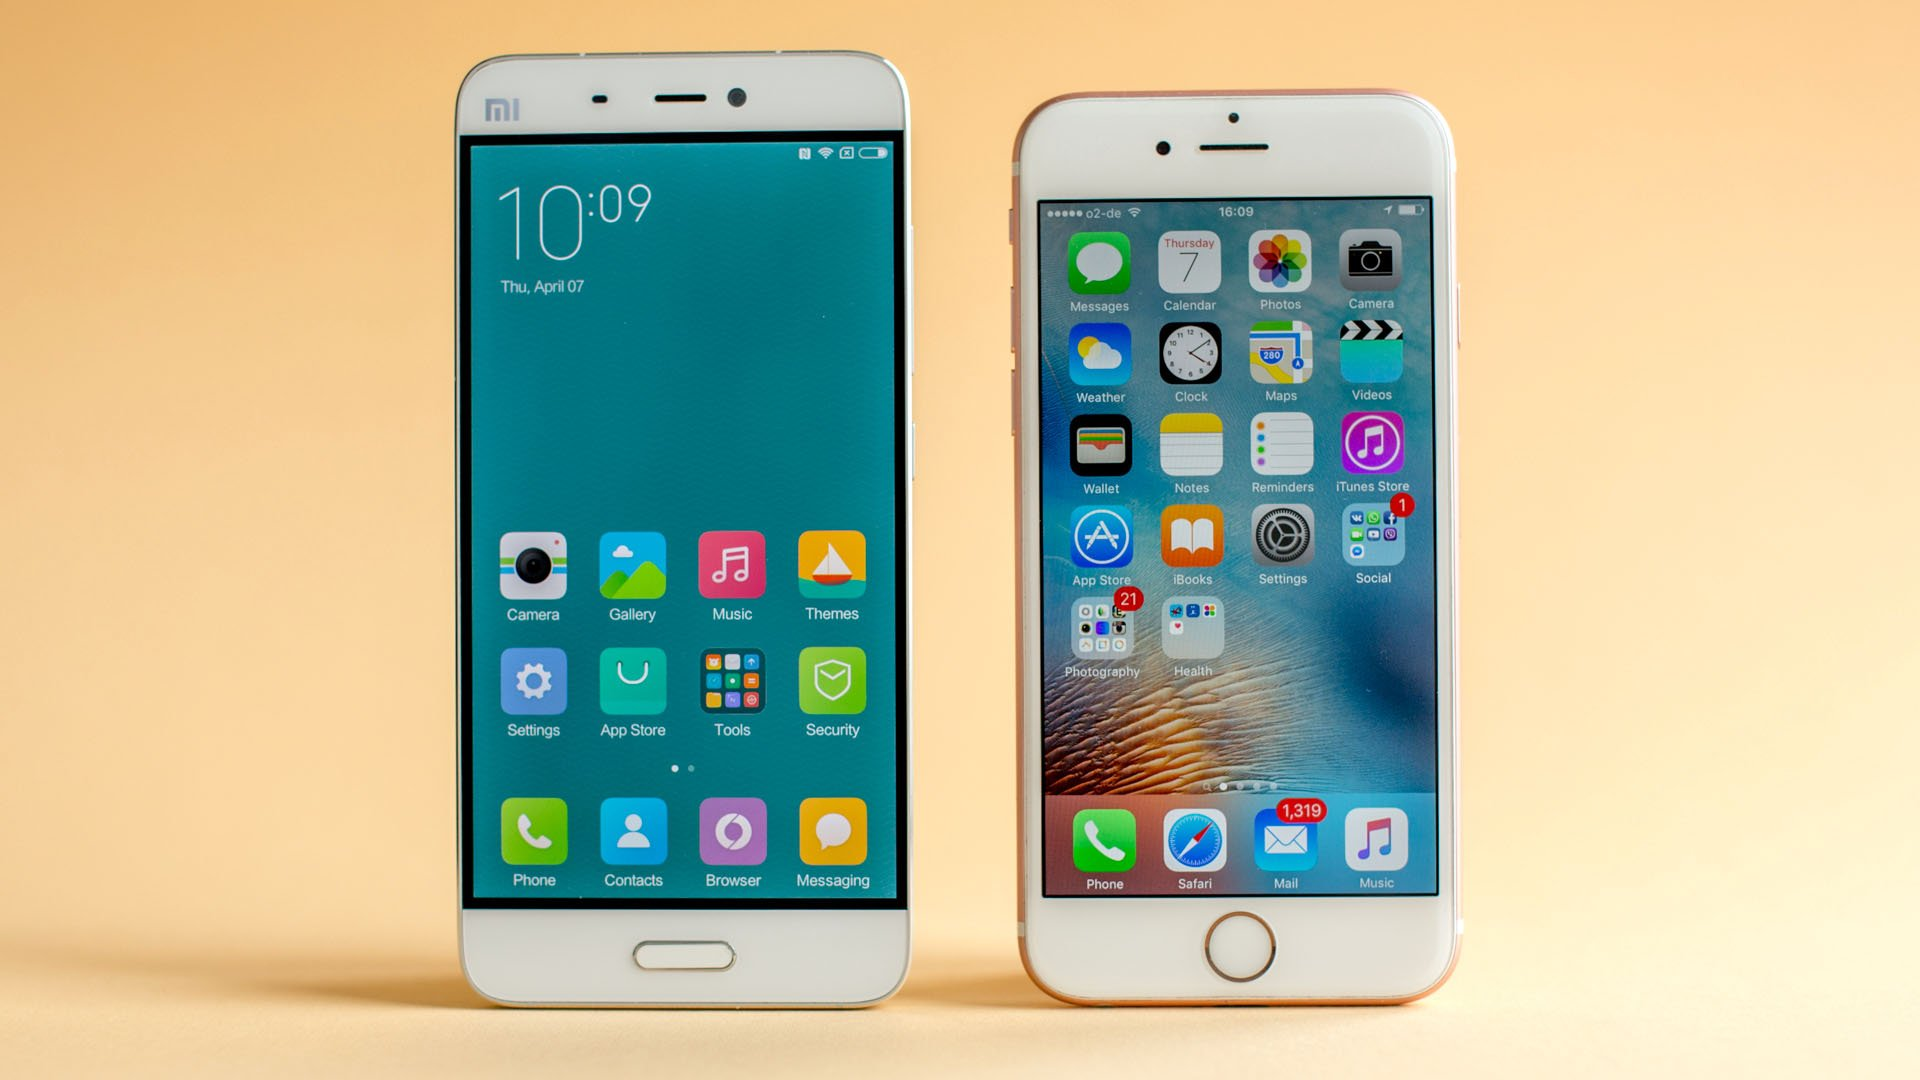 Xiaomi Mi5 Vs Iphone 4